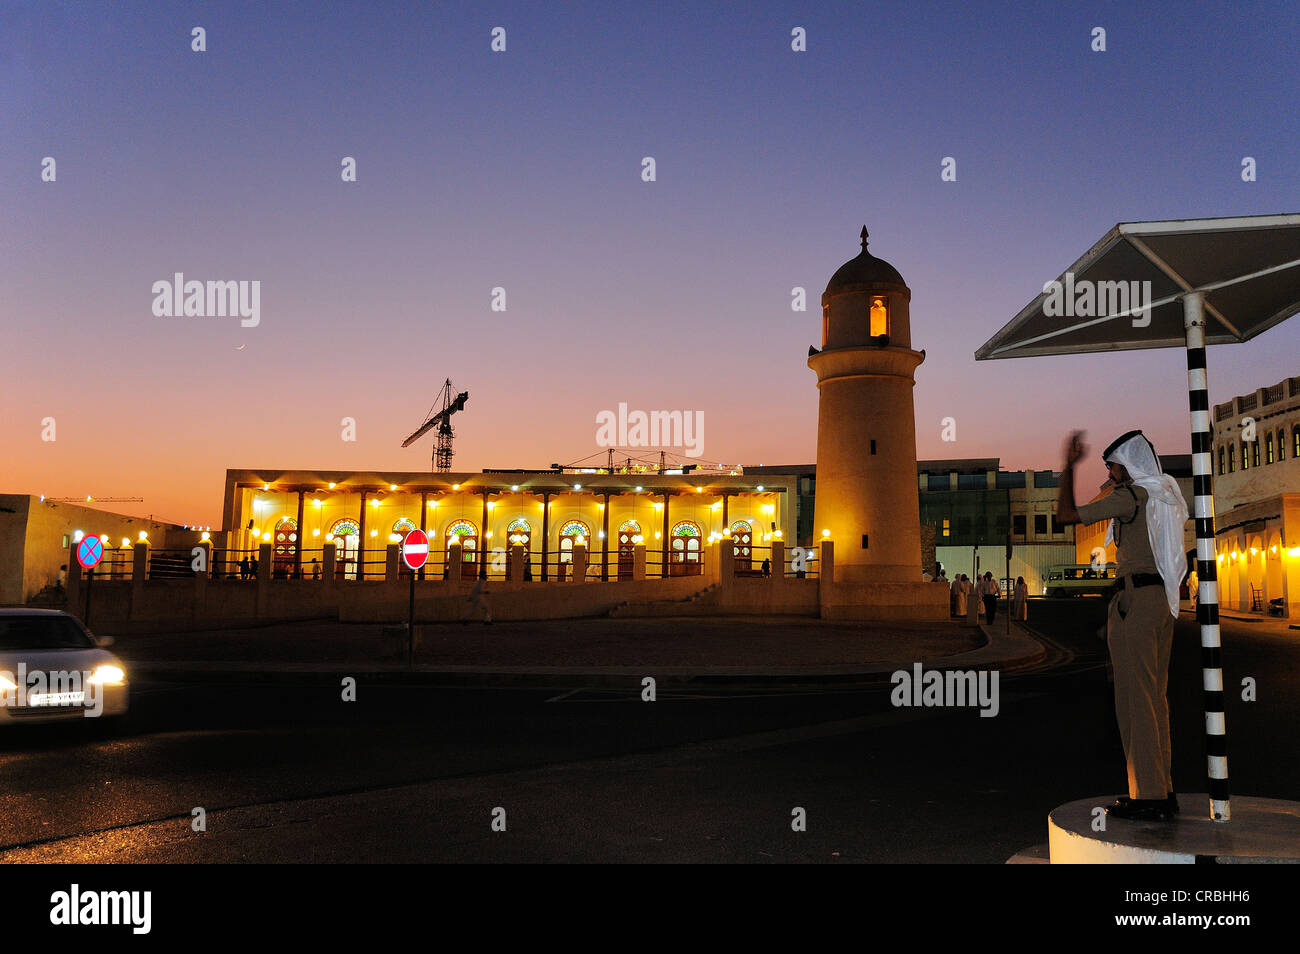 Police officer directing traffic outside the mosque in the Souk Waqik, Doha, Qatar - Stock Image